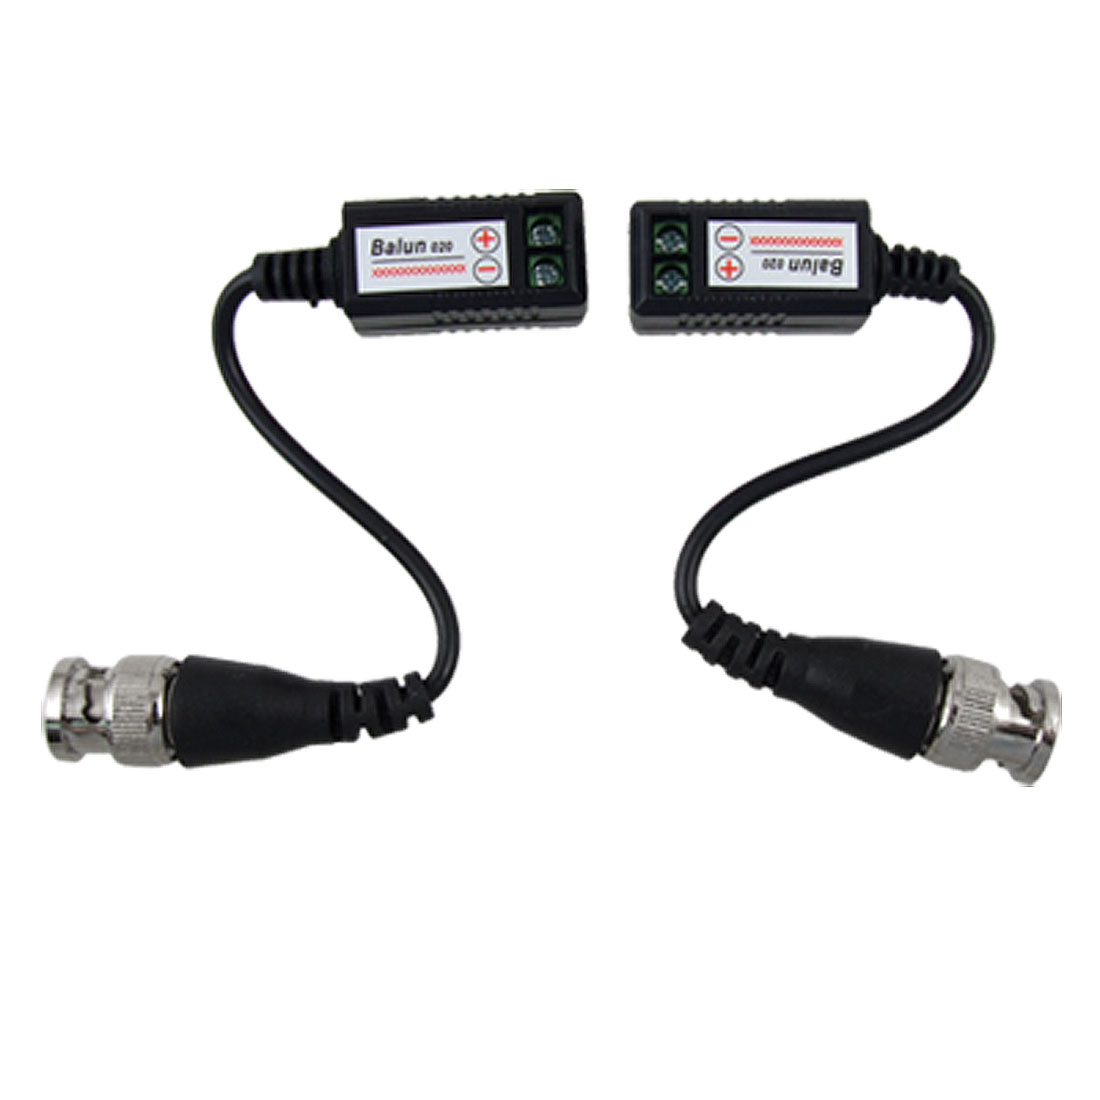 2 x Single Channel UTP Passive BNC Video Balun w Pigtail for CCTV Camera